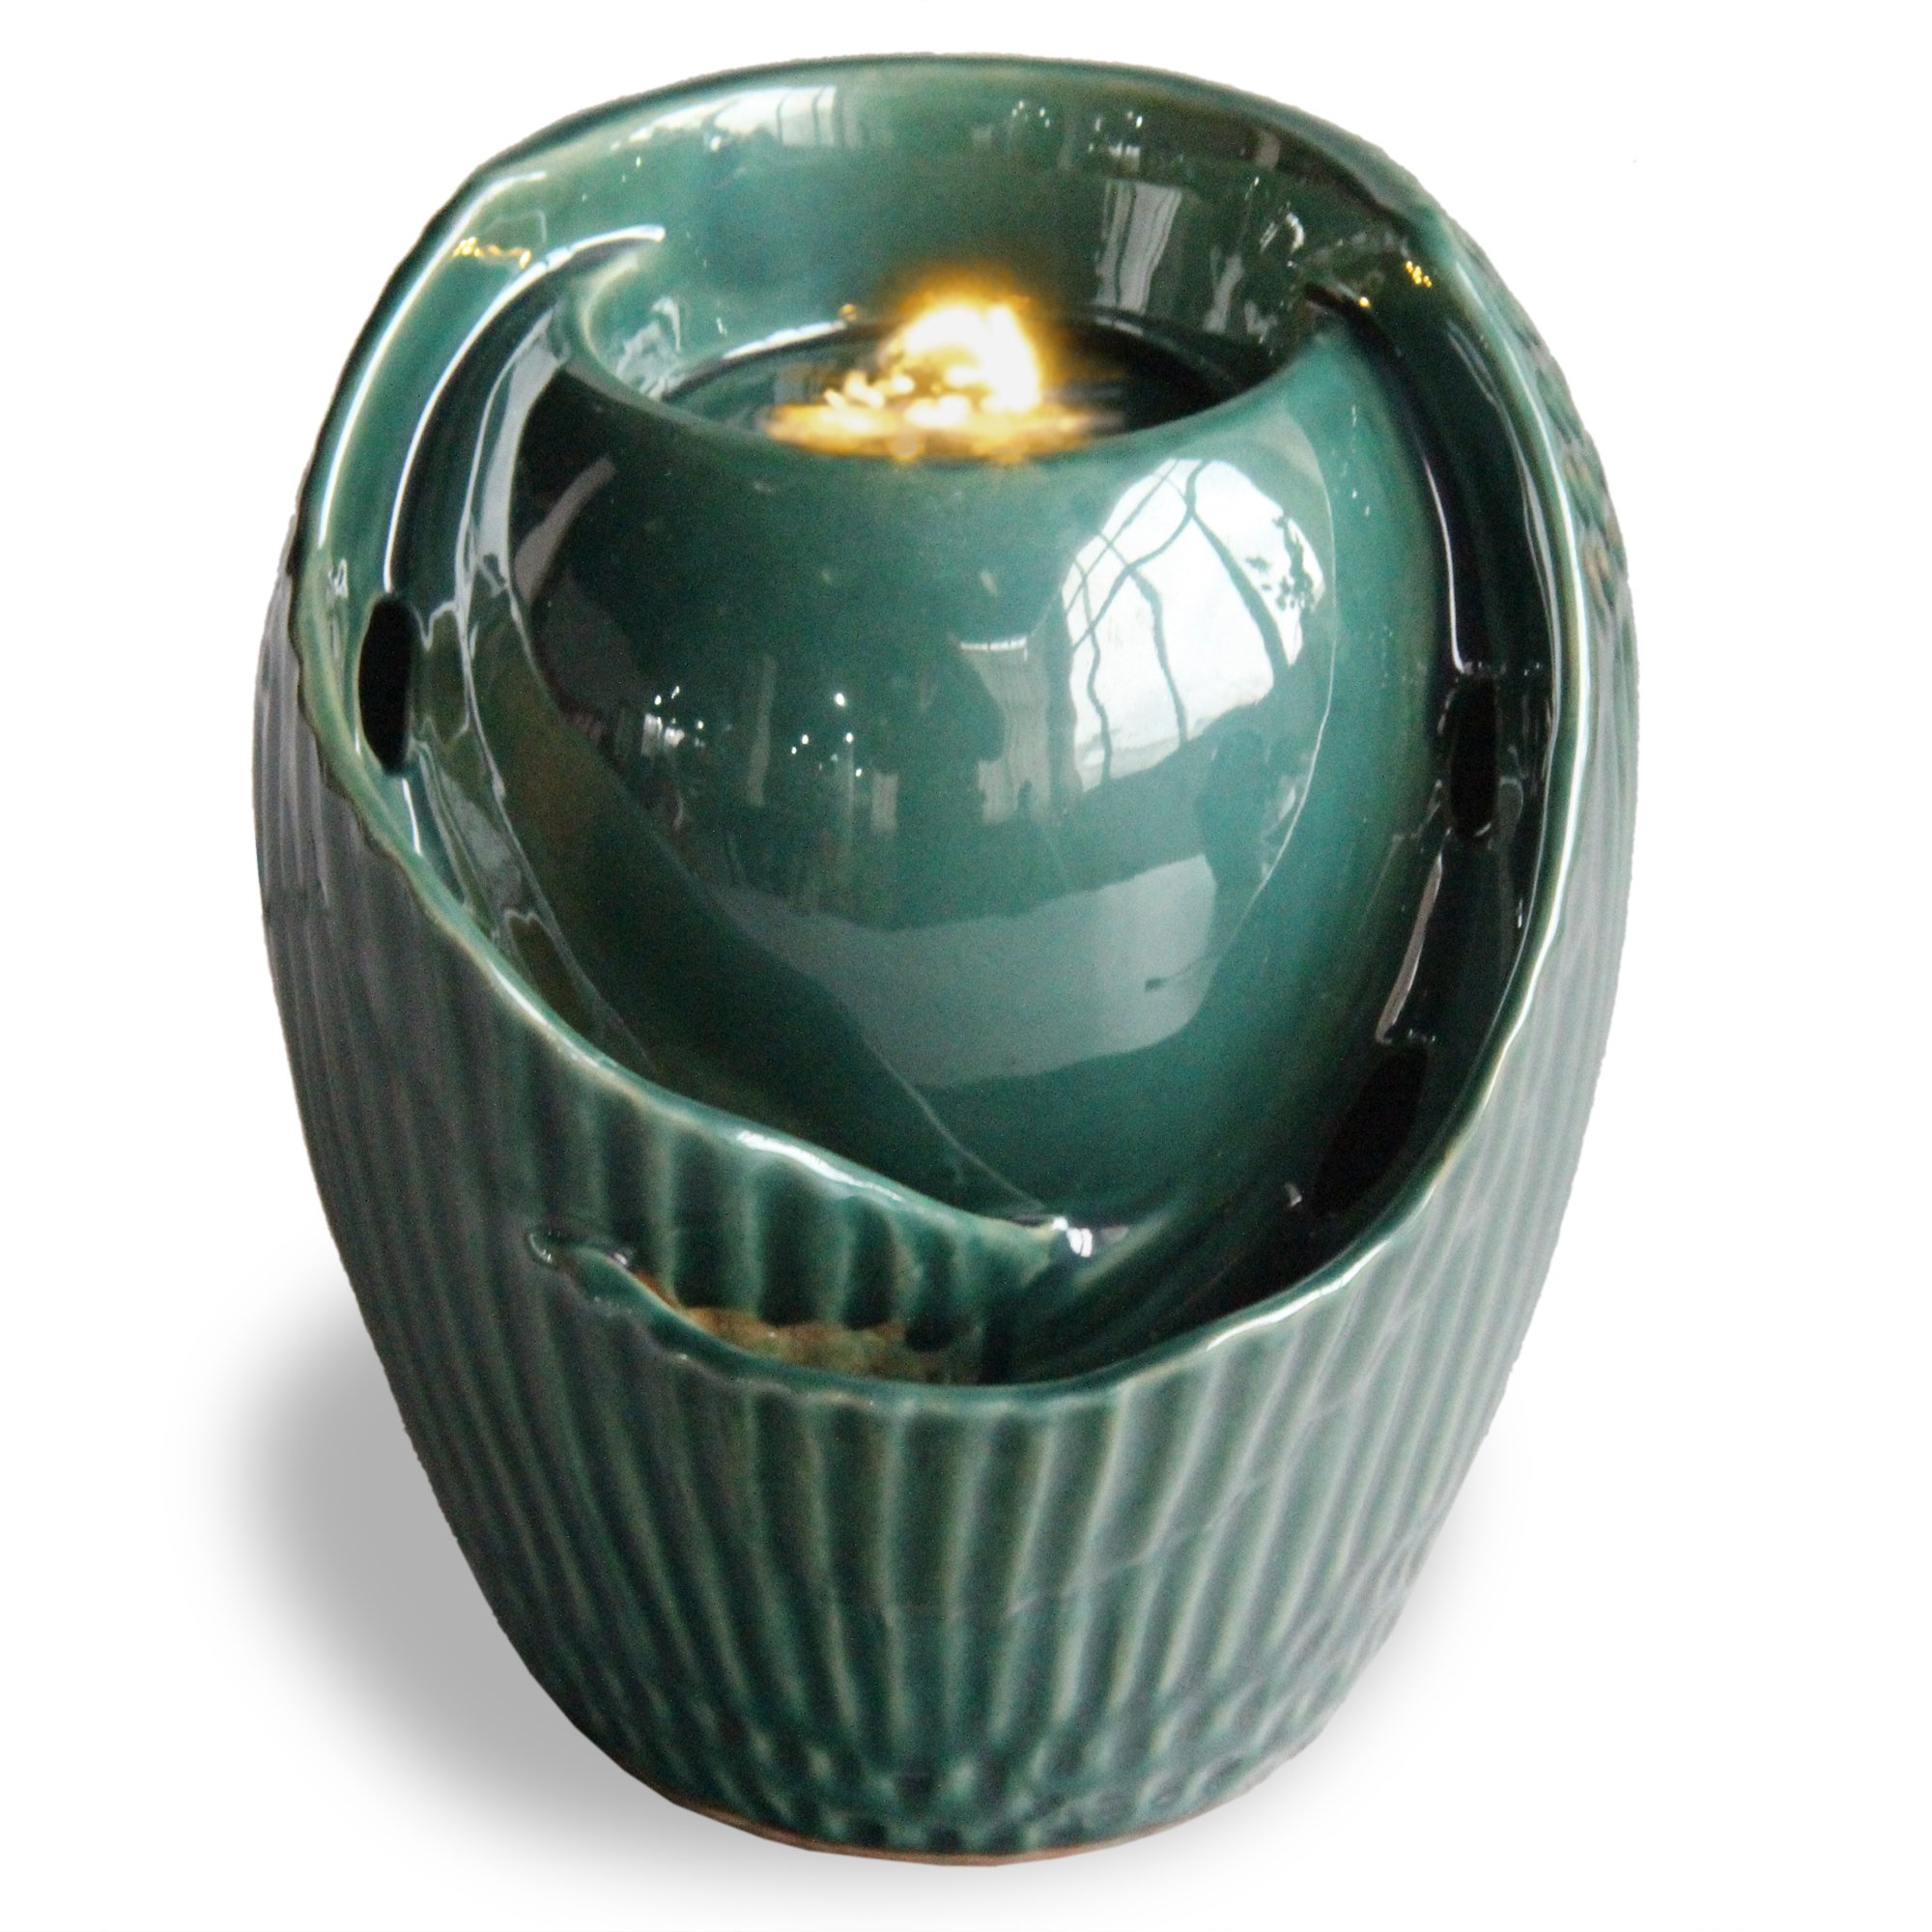 Pacific Decor Led Fountain, 8-Inch x 6.5-Inch, Green